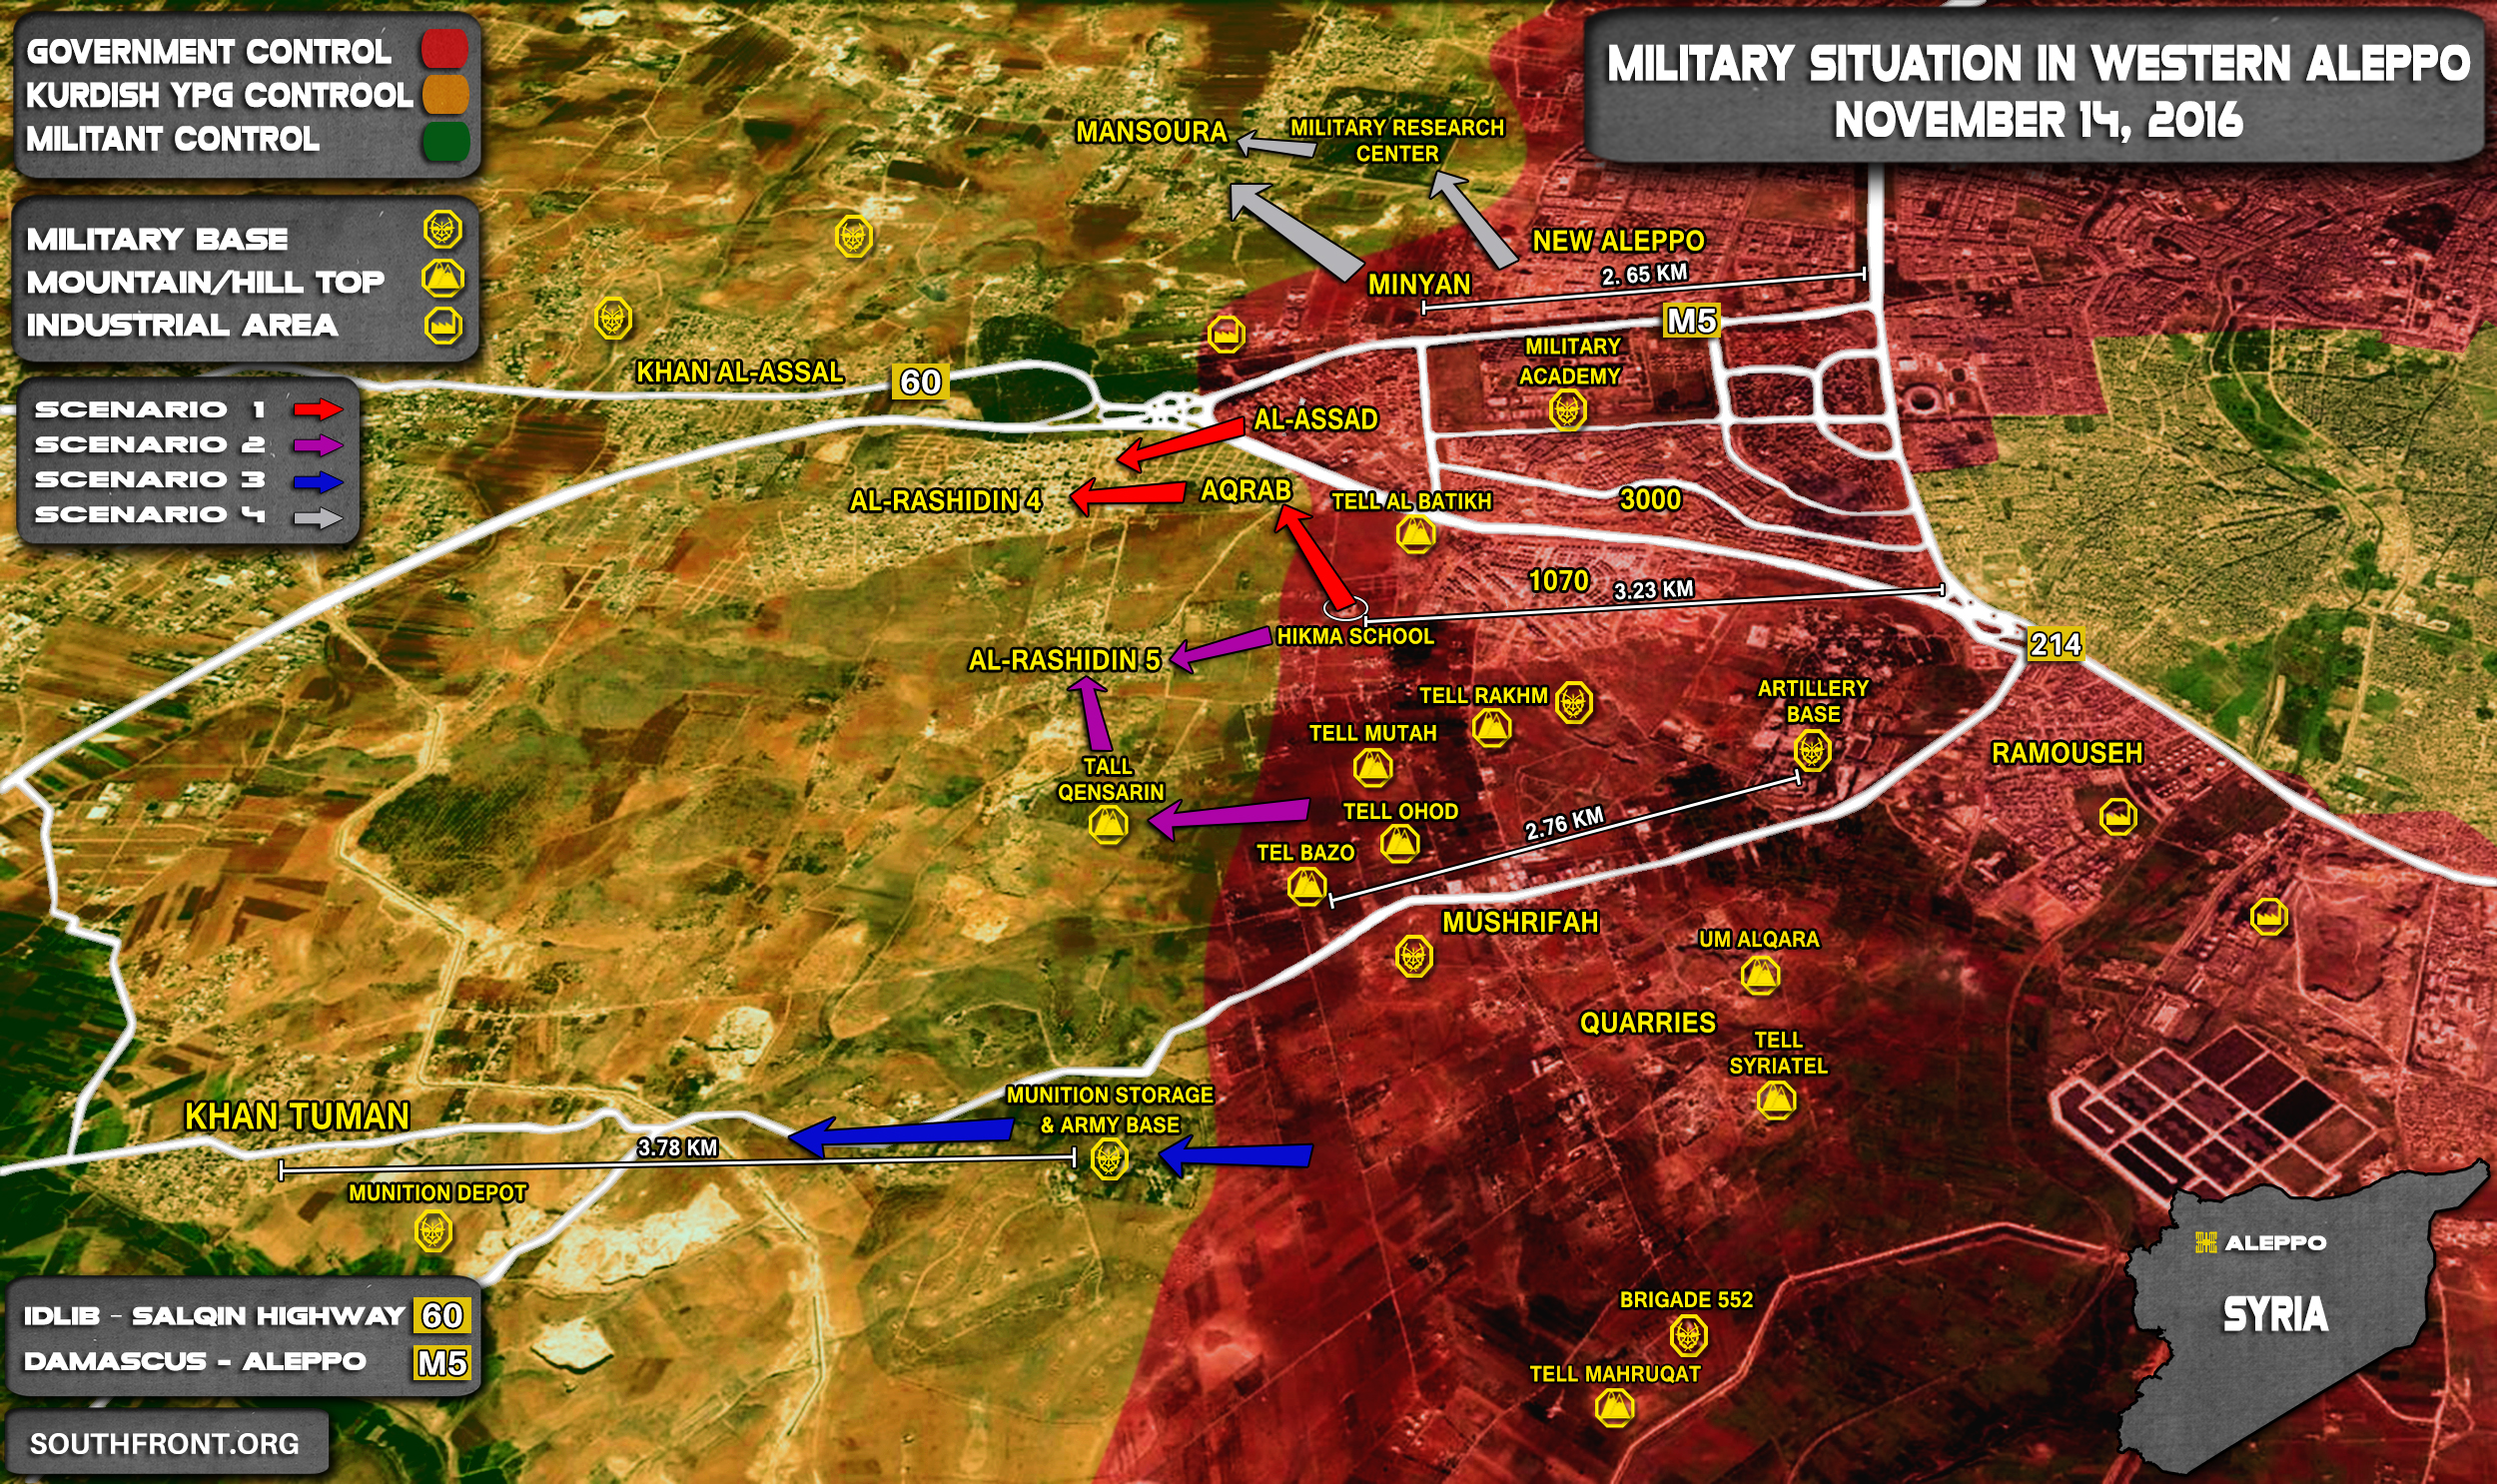 Overview of Military Situation in Aleppo City on November 14, 2016